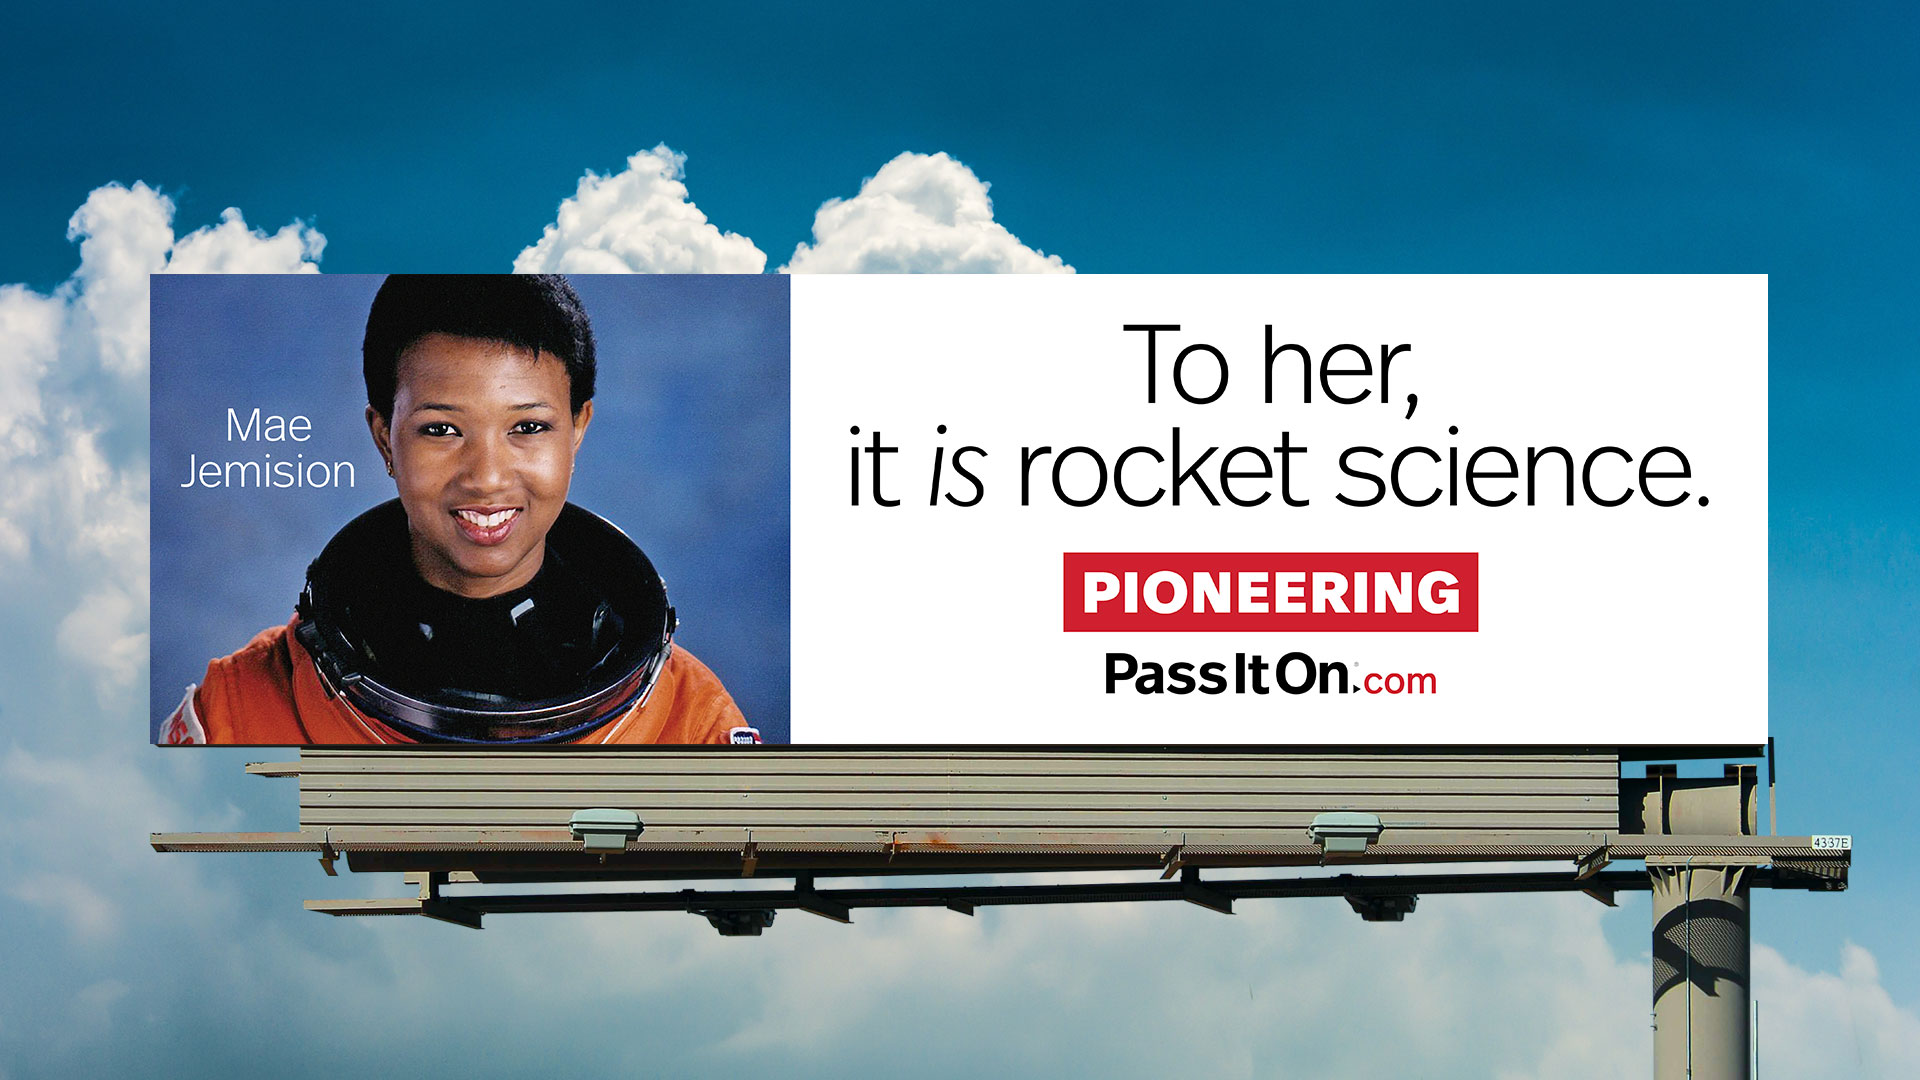 Pioneering mae jemison